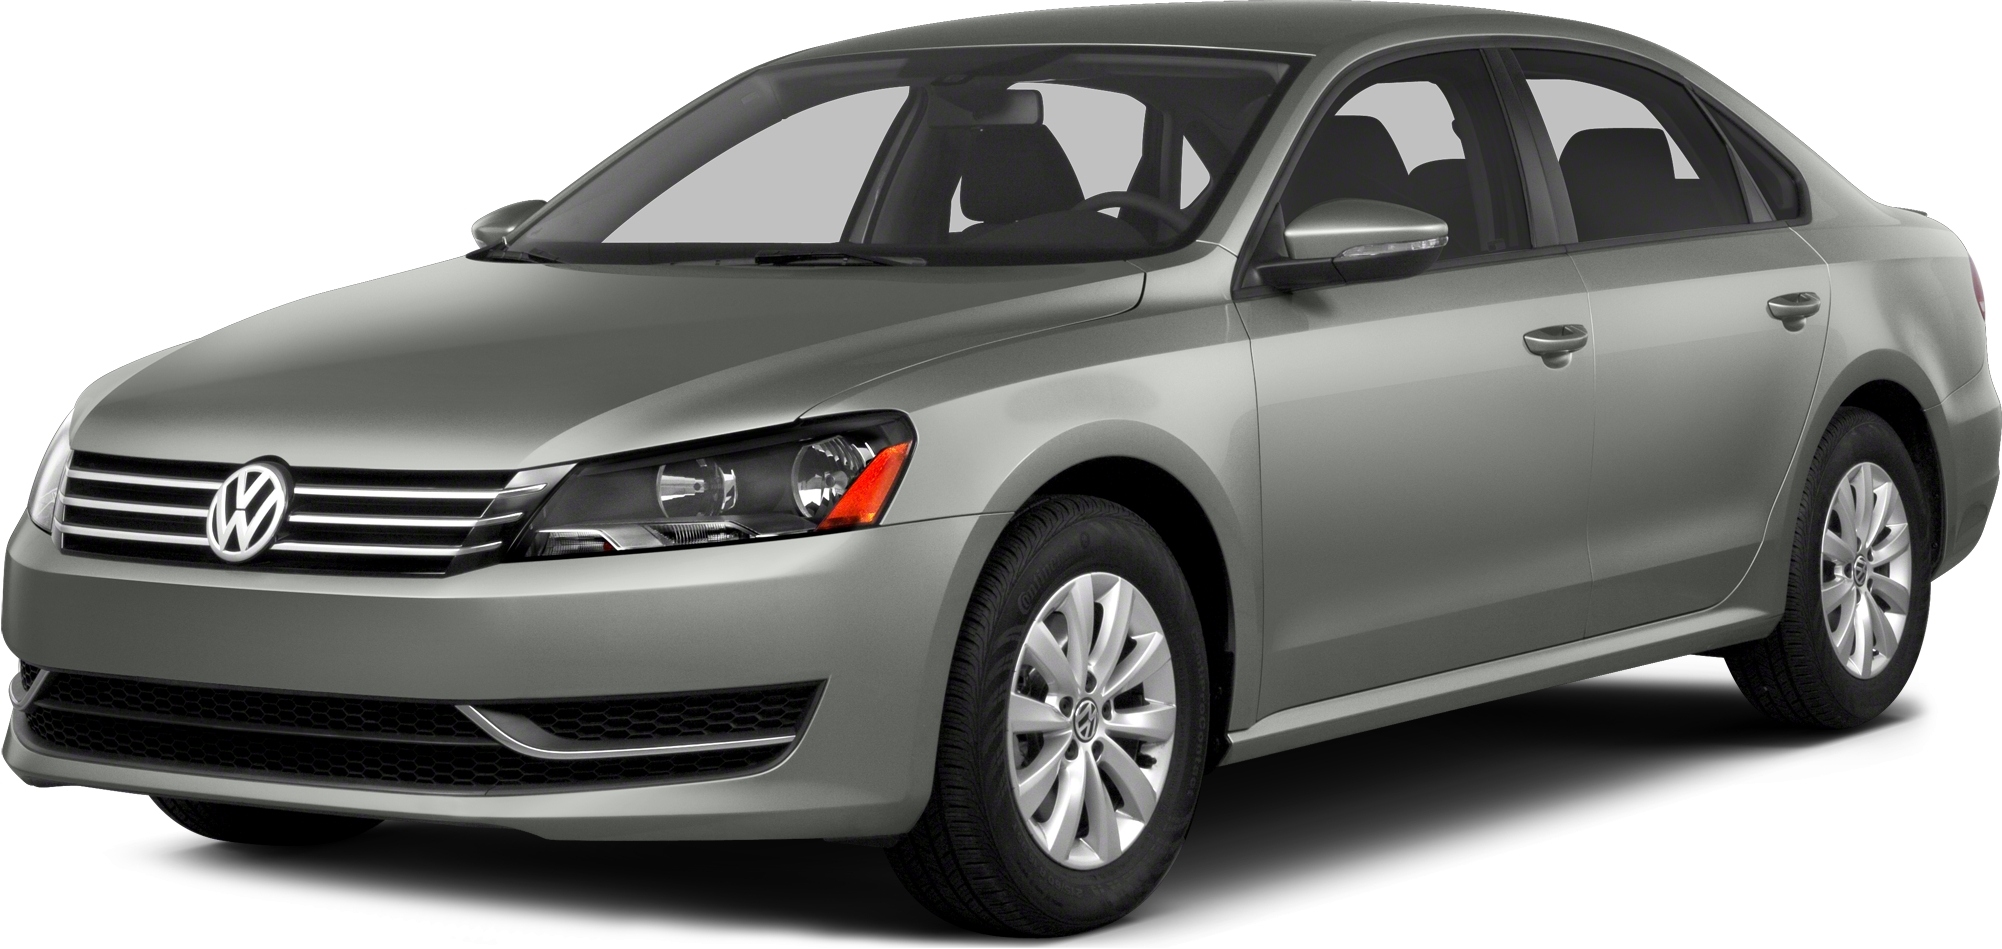 2015 volkswagen passat limited edition pzev glendale ca. Black Bedroom Furniture Sets. Home Design Ideas